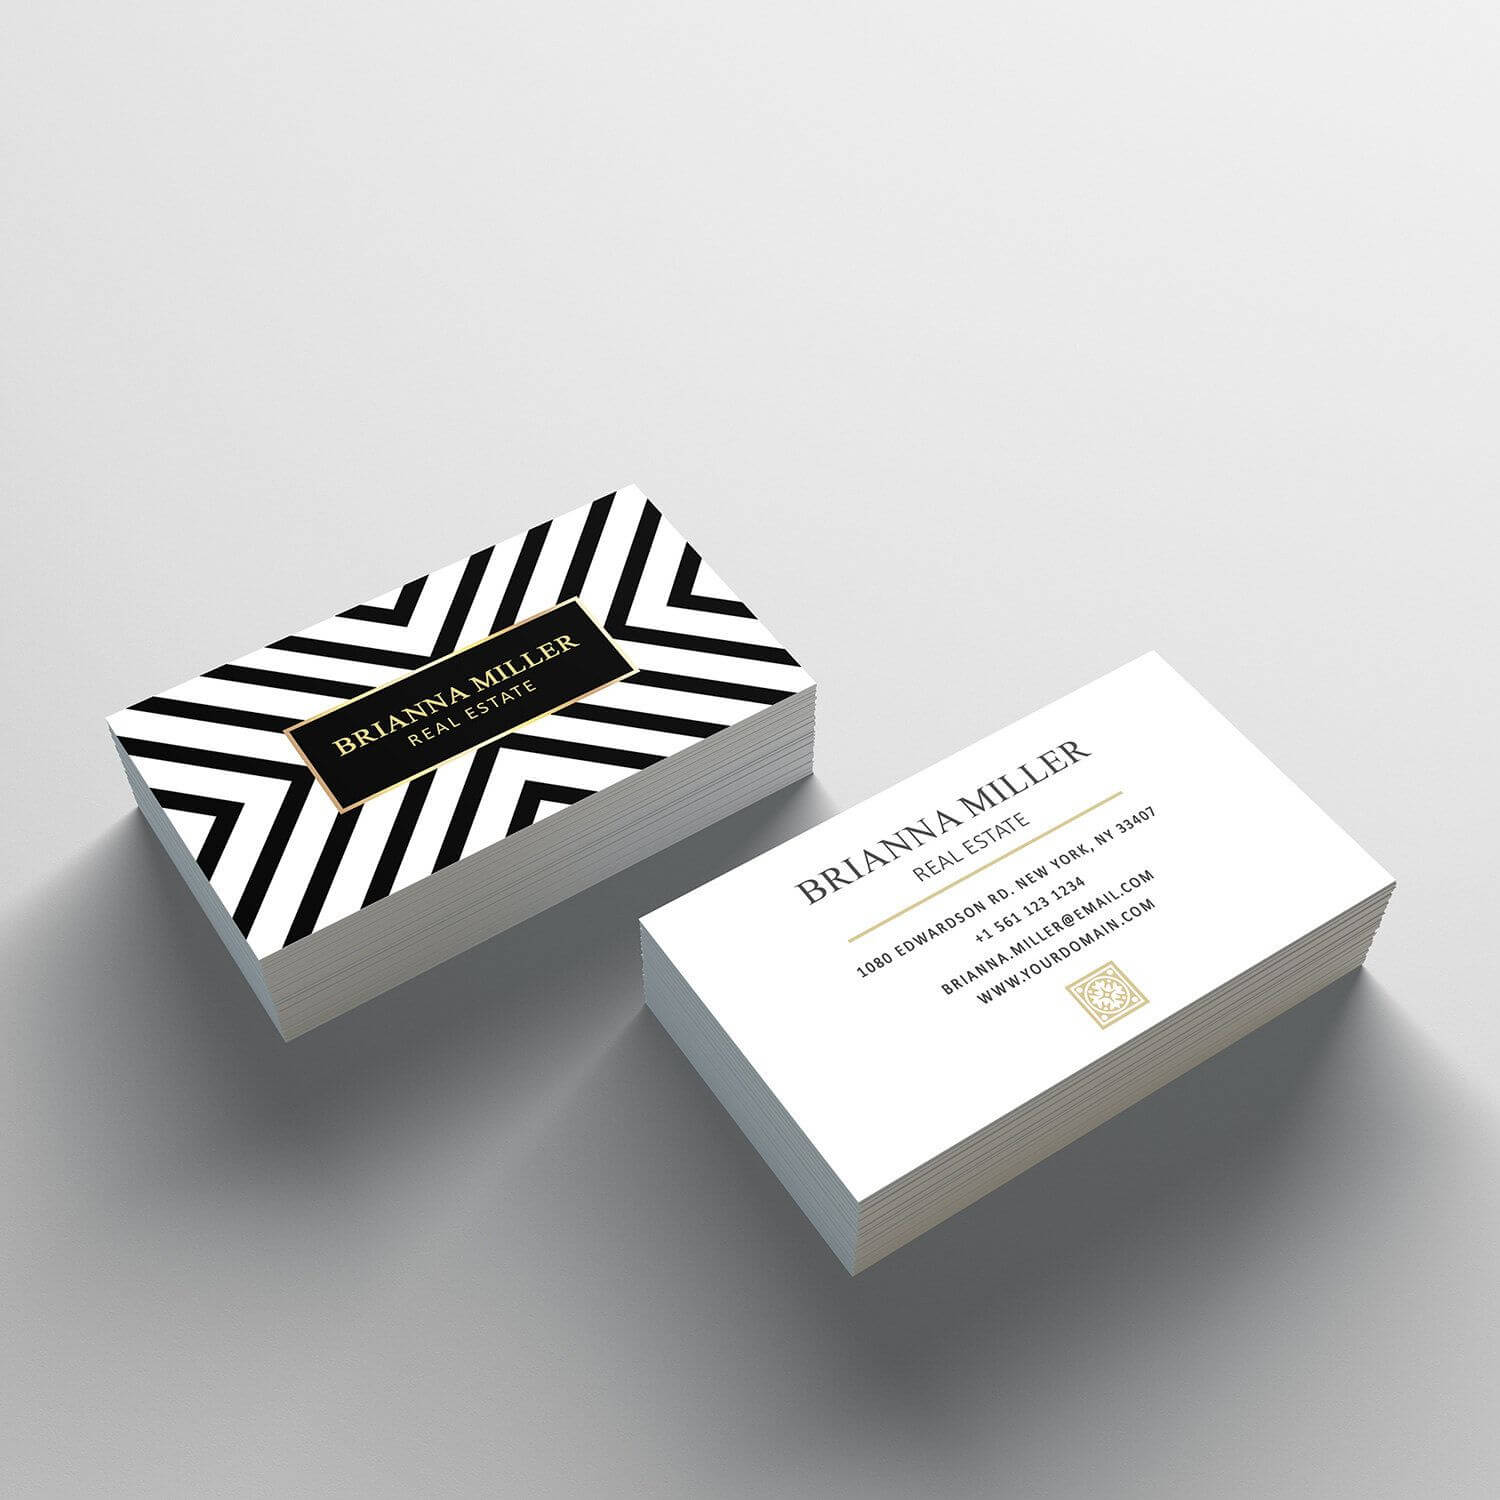 Business Card Template - 2 Sided Business Card Design Regarding 2 Sided Business Card Template Word